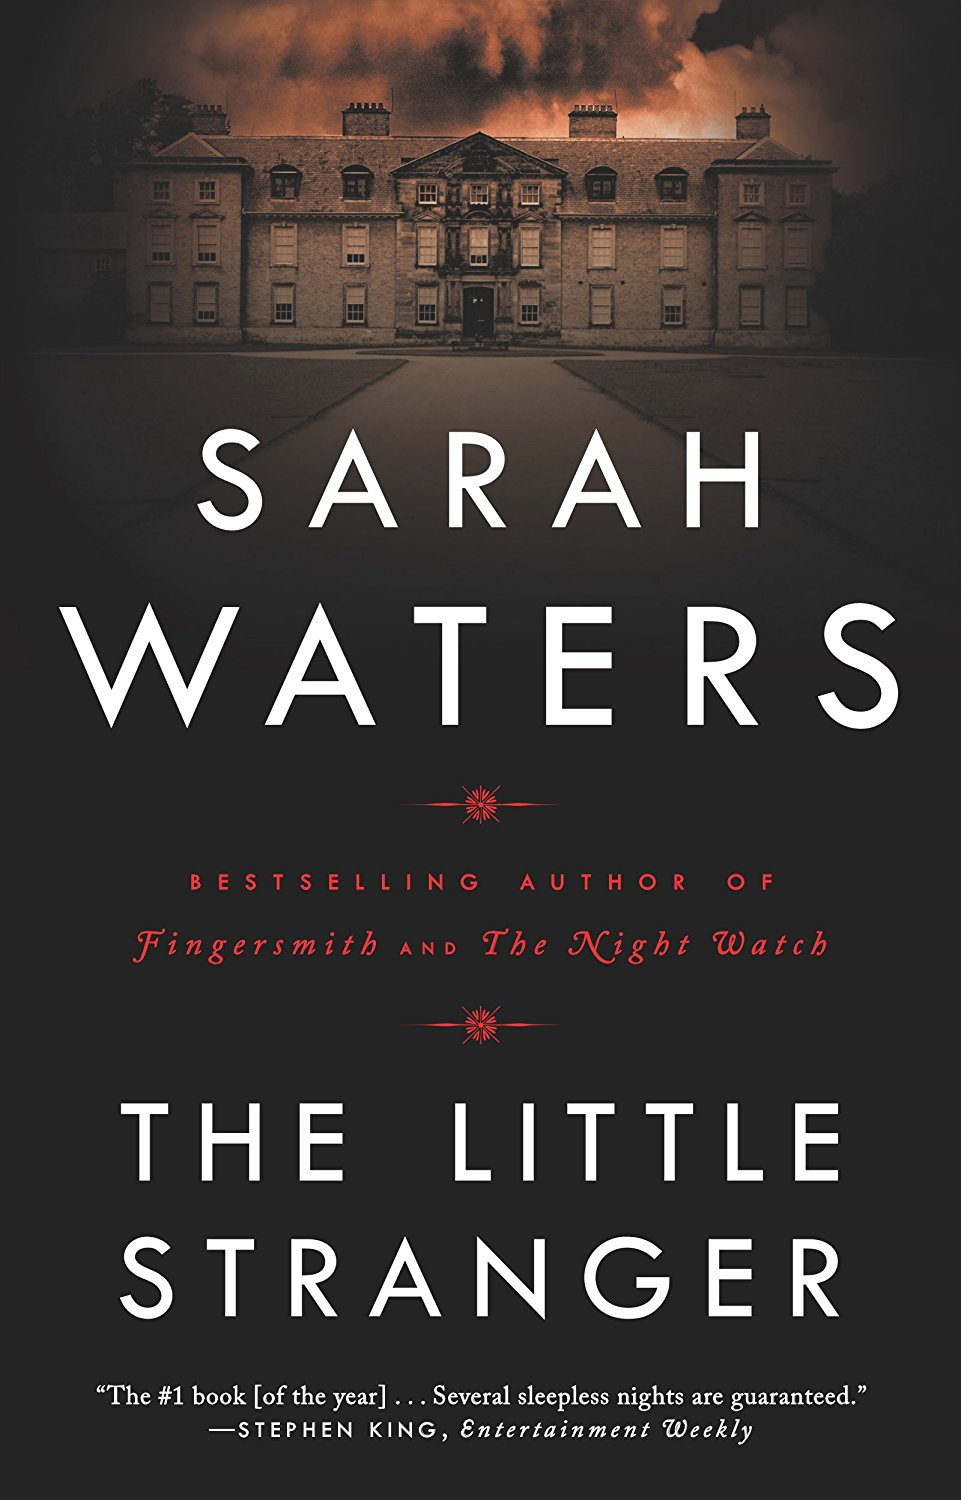 'The Little Stranger' by Sarah Waters